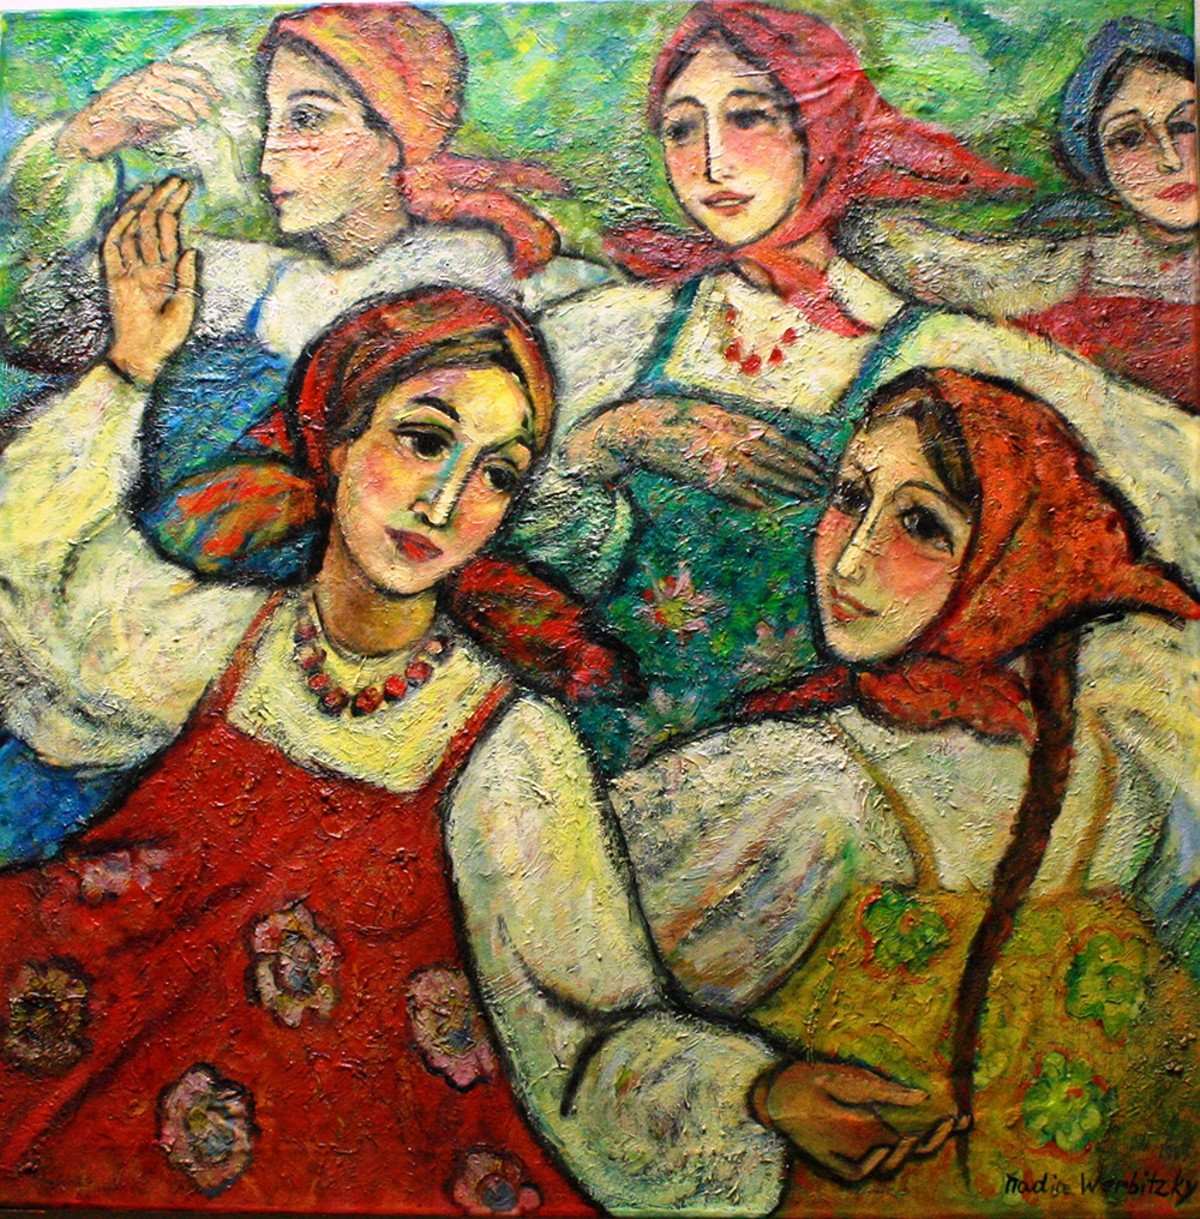 Russian Round Dance | Painting by Nadia Werbitzky